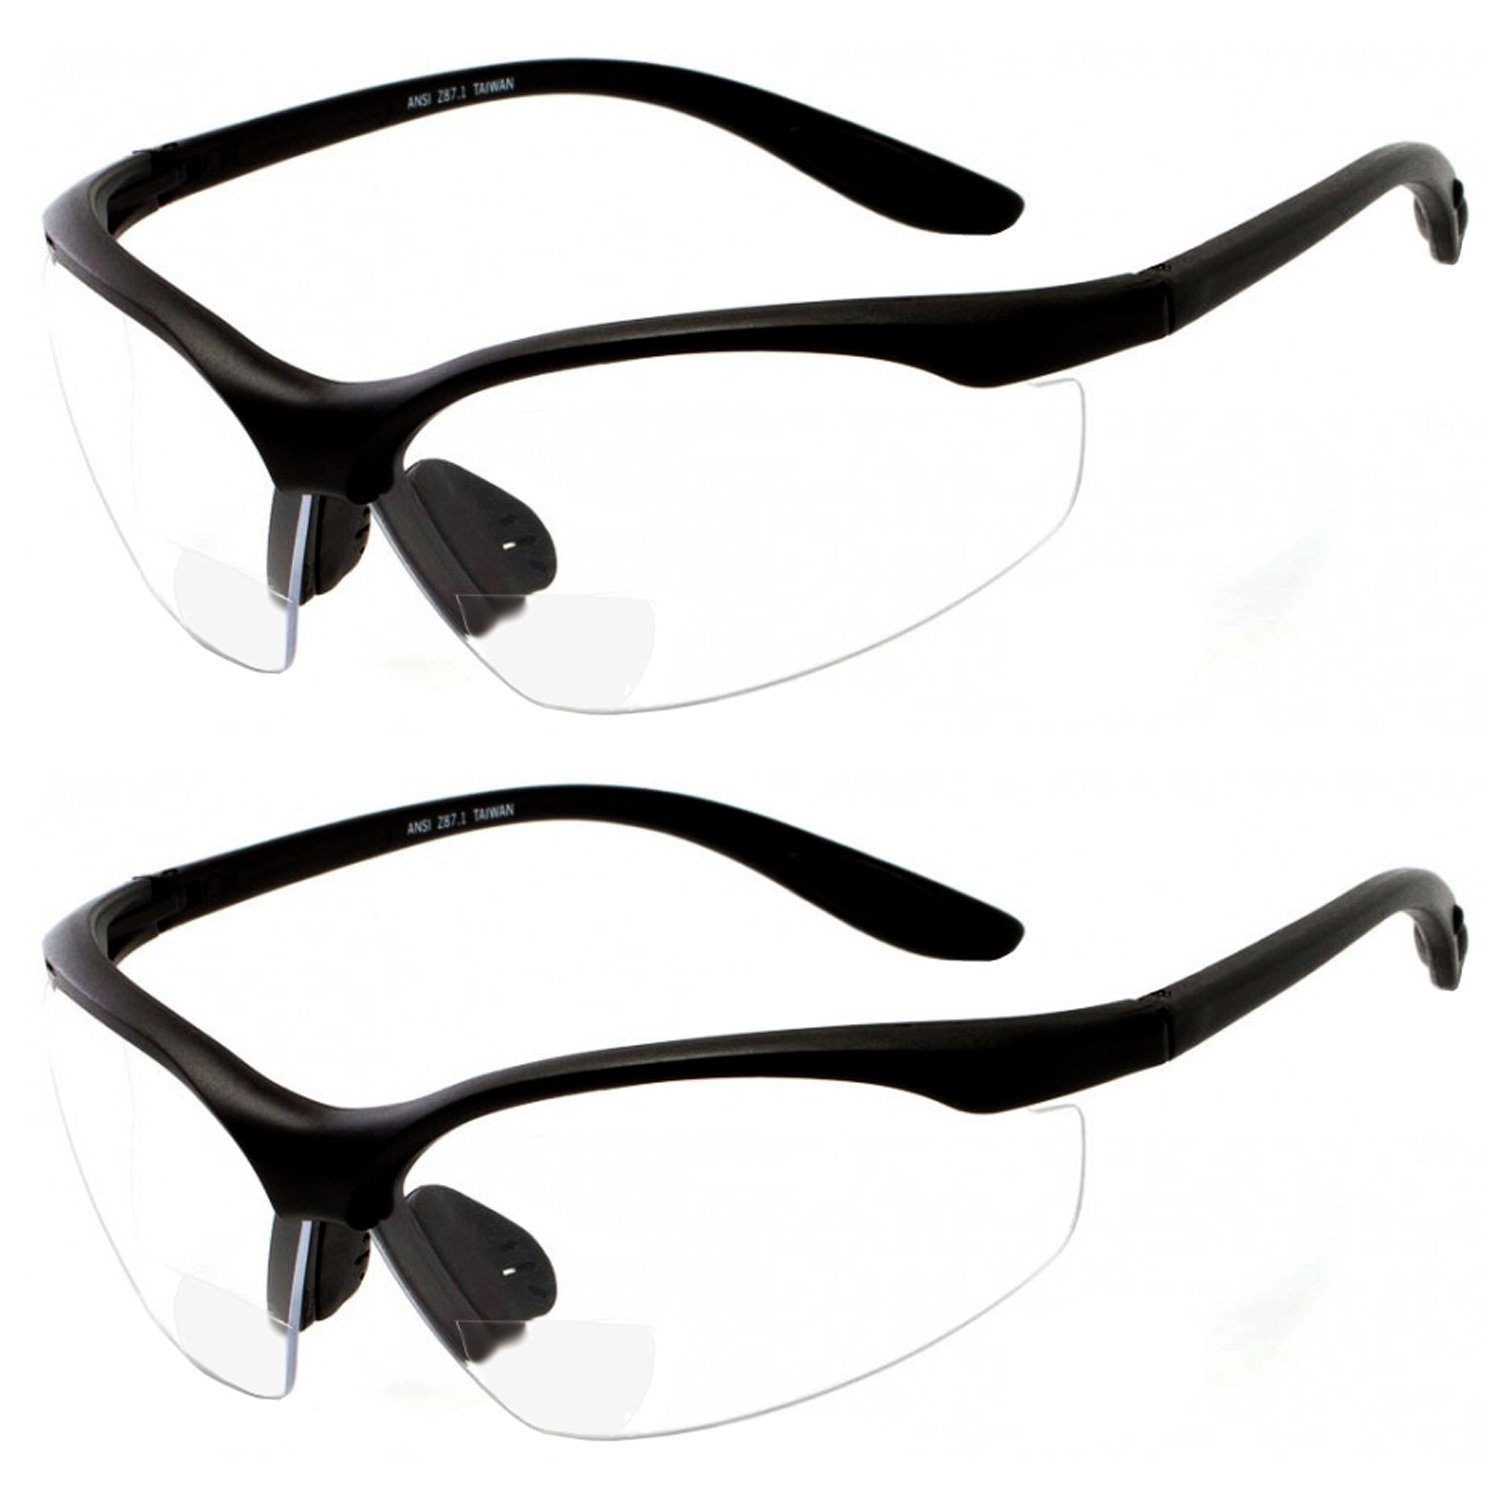 2 Pairs Bifocal Safety Glasses Clear Lens with Reading Corner - Non-Slip Rubber Grip Diopter/+2.00 by grinderPUNCH (Image #1)